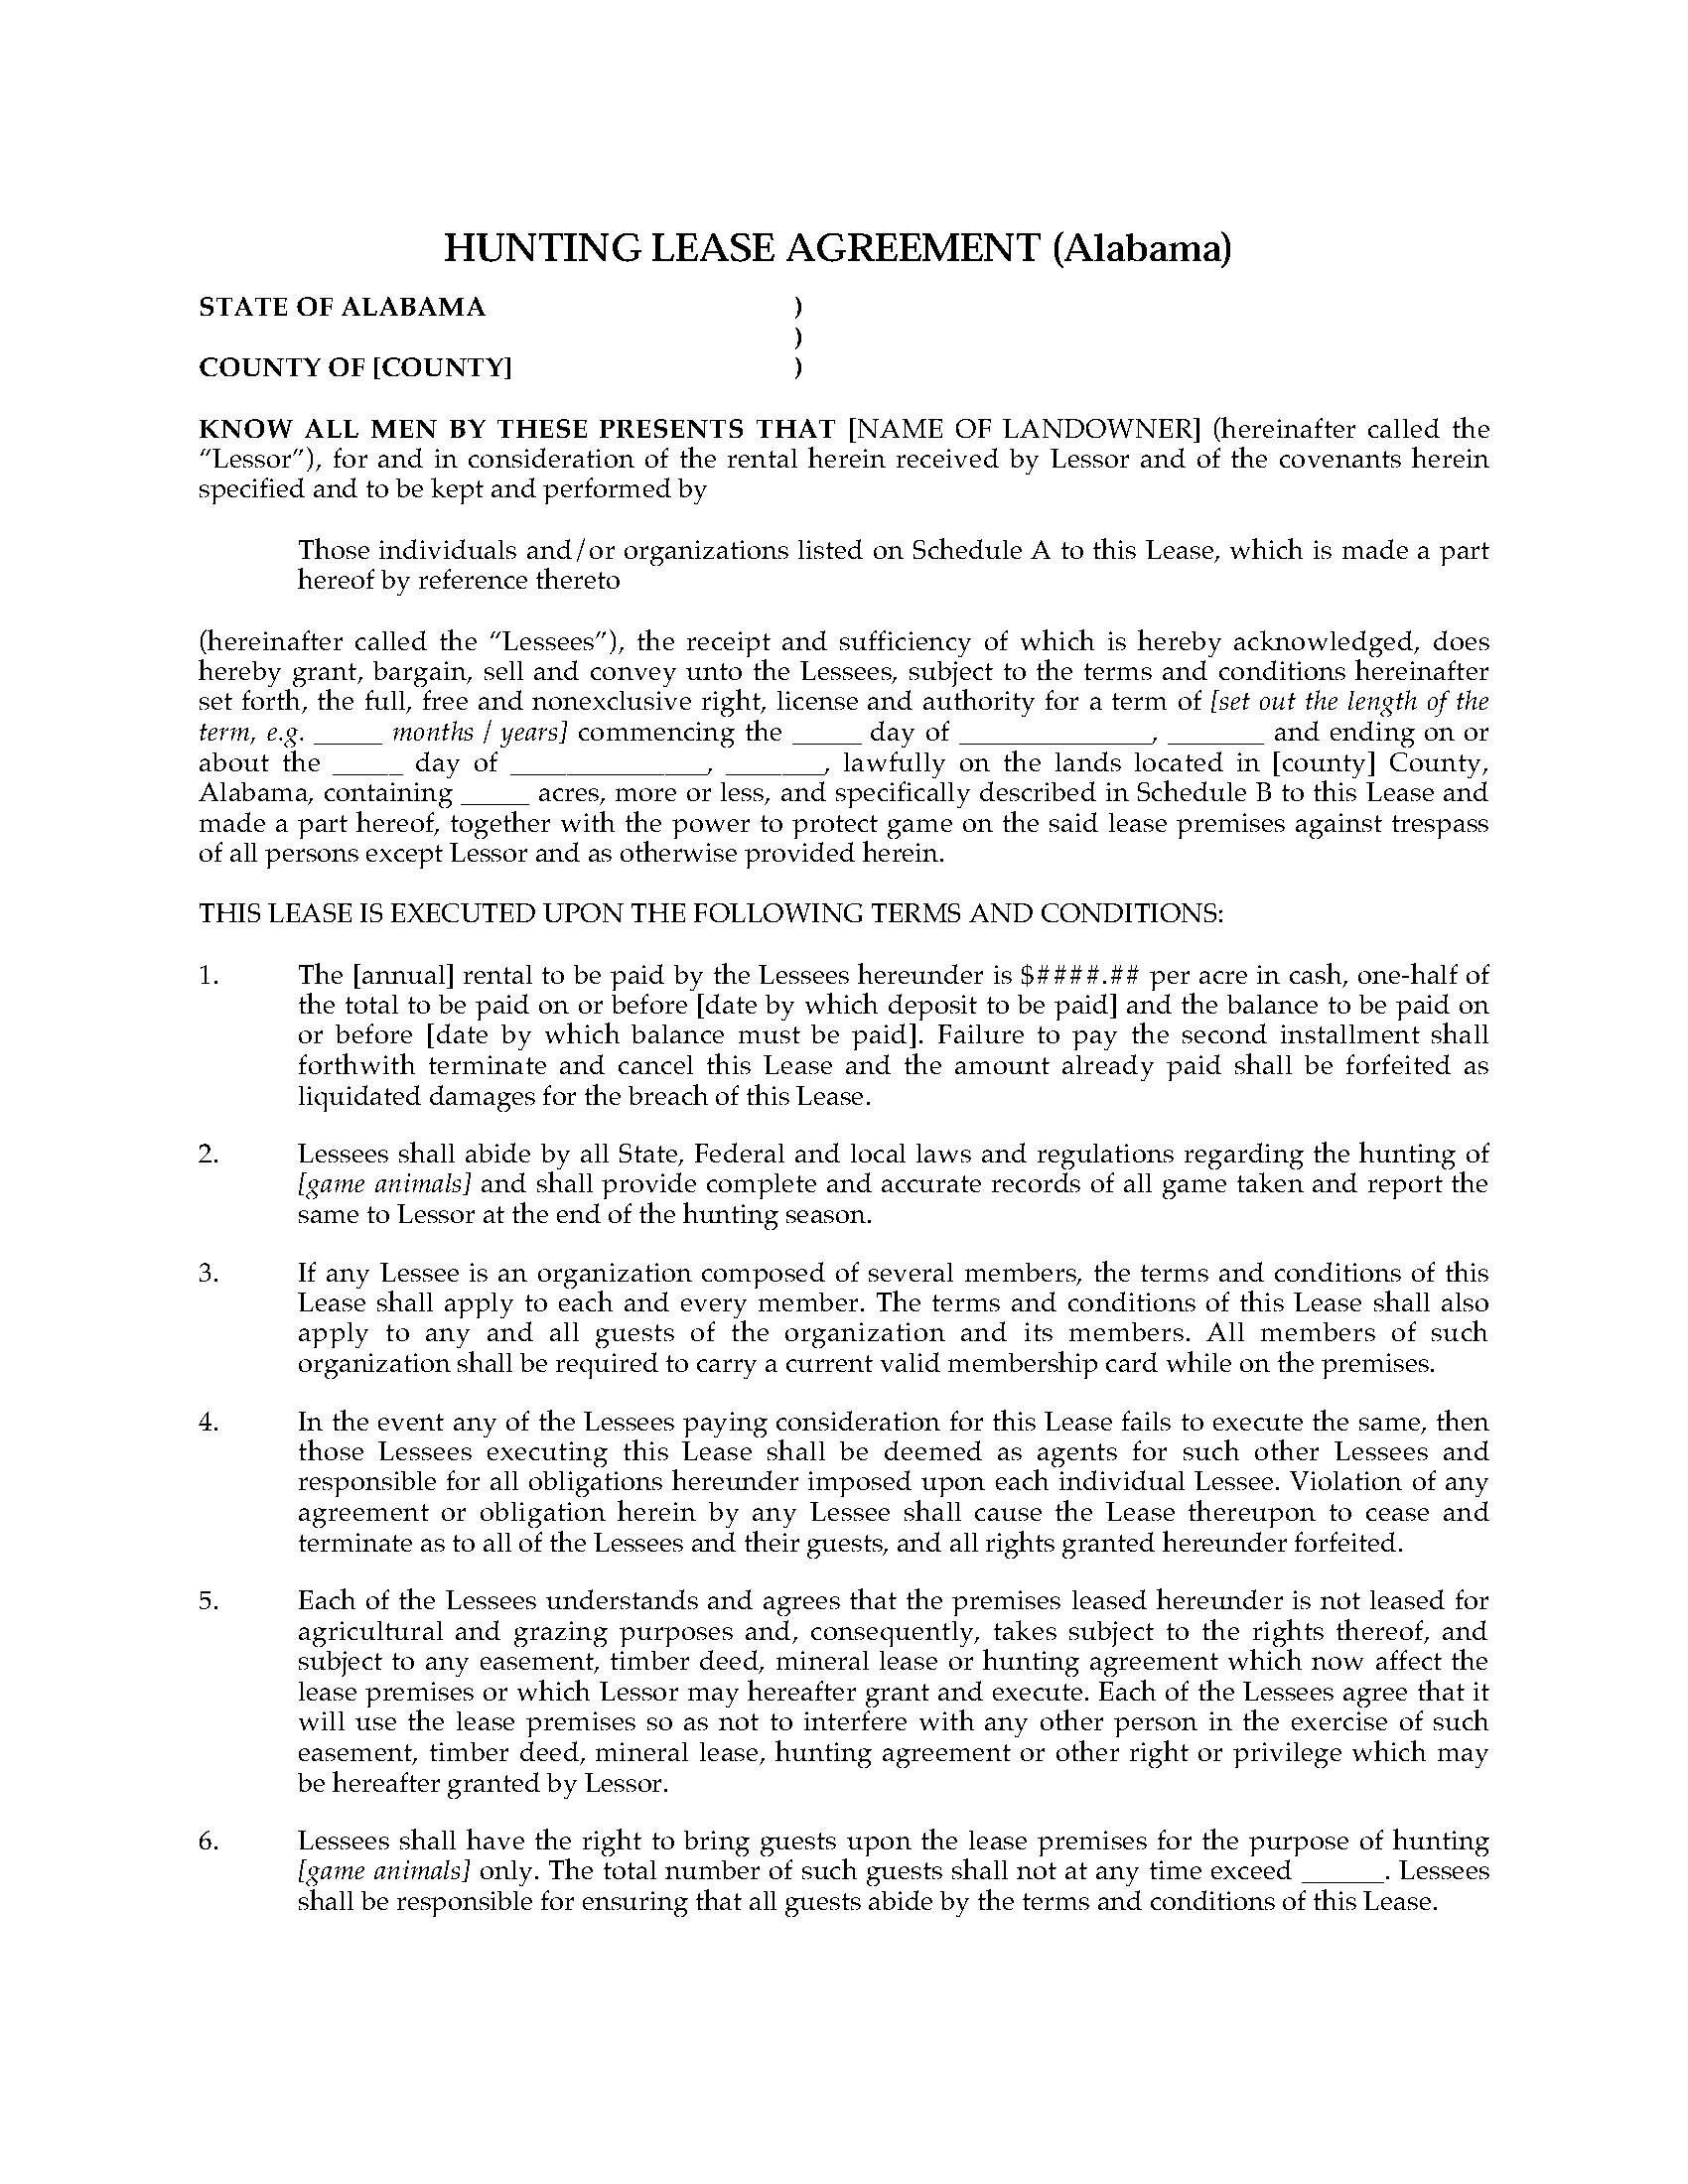 Alabama Hunting Lease Agreement